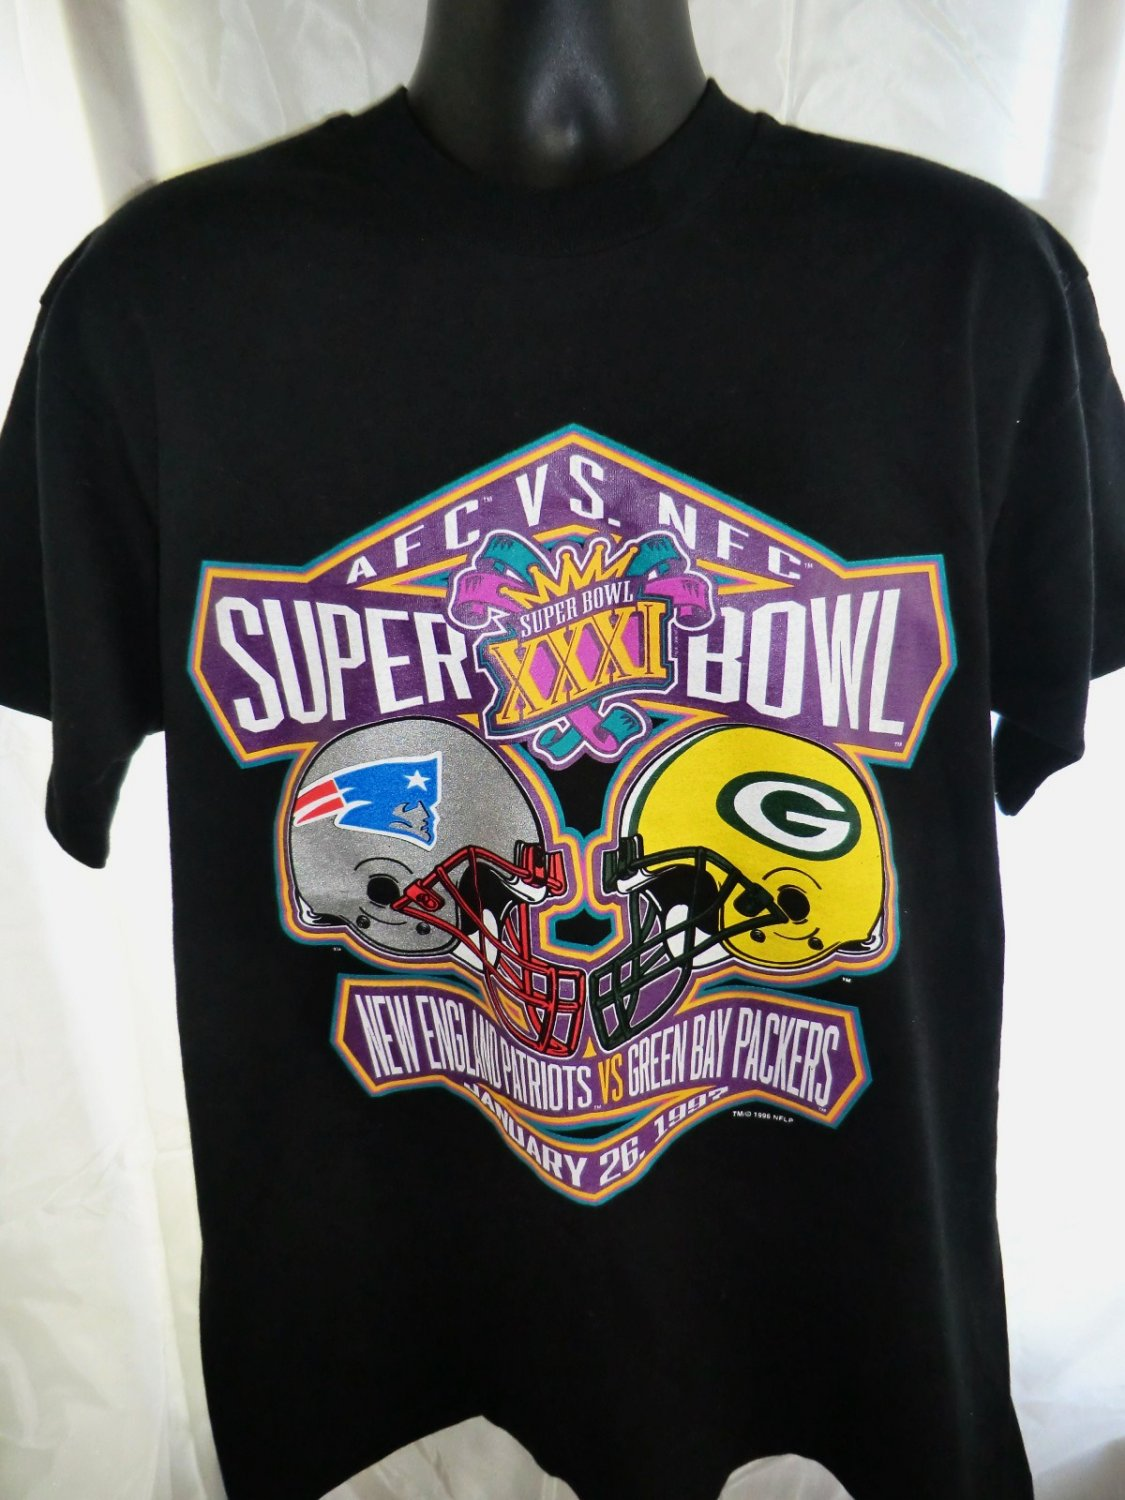 SOLD! Super Bowl XXXI Patriots vs Green Bay Packers T-Shirt Size XL 1997